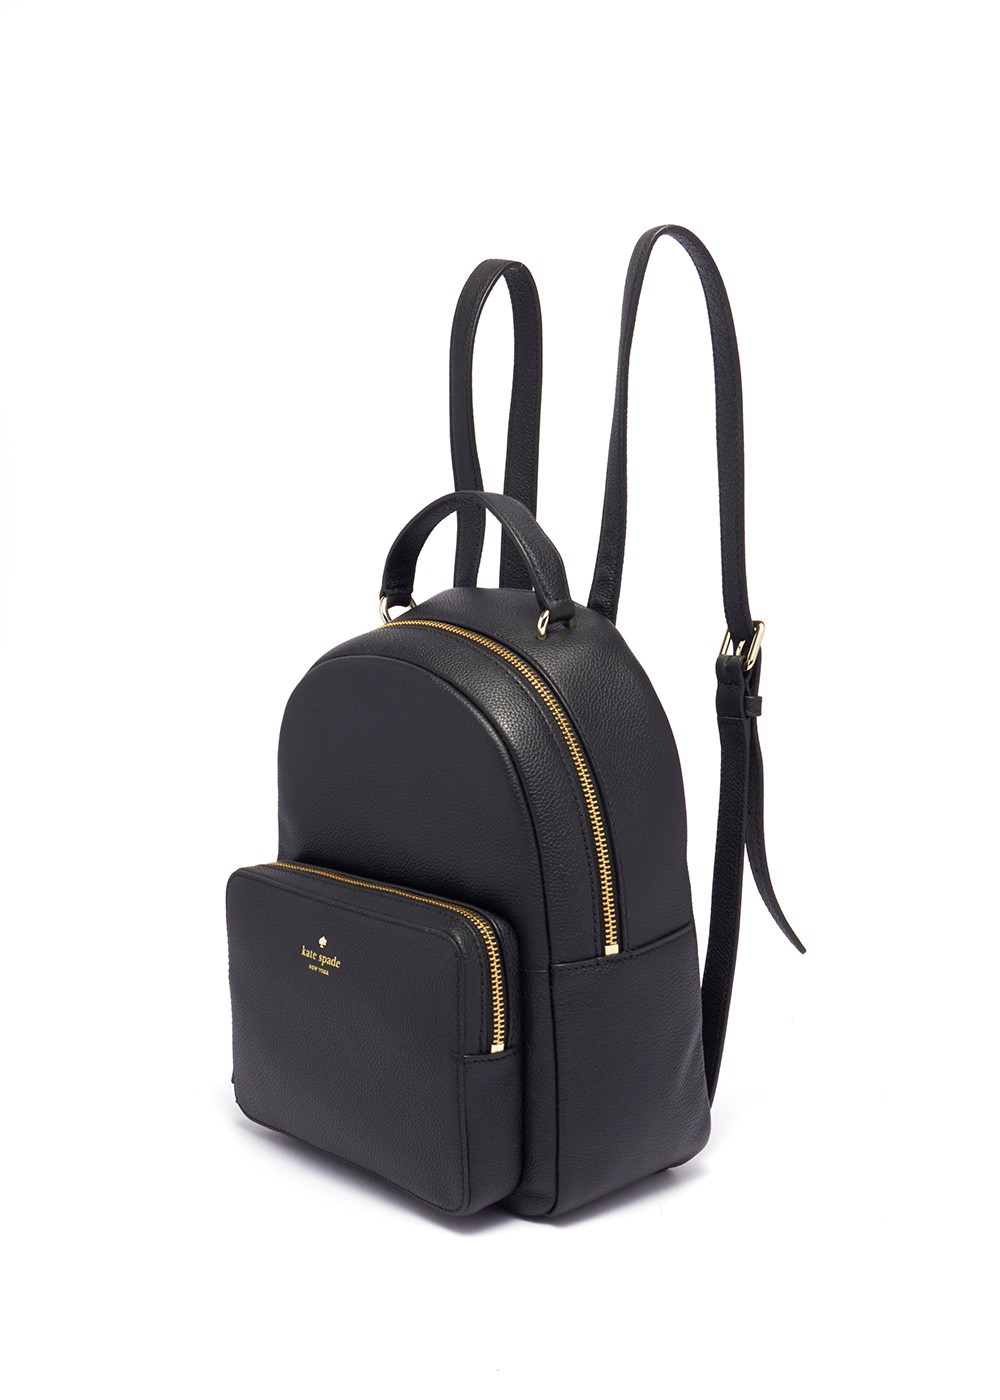 【最大57%OFF】【kate spade new york】バックパック|BLACK|リュック|2019 SPRING & SUMMER NEW ARRIVAL COLLECTION